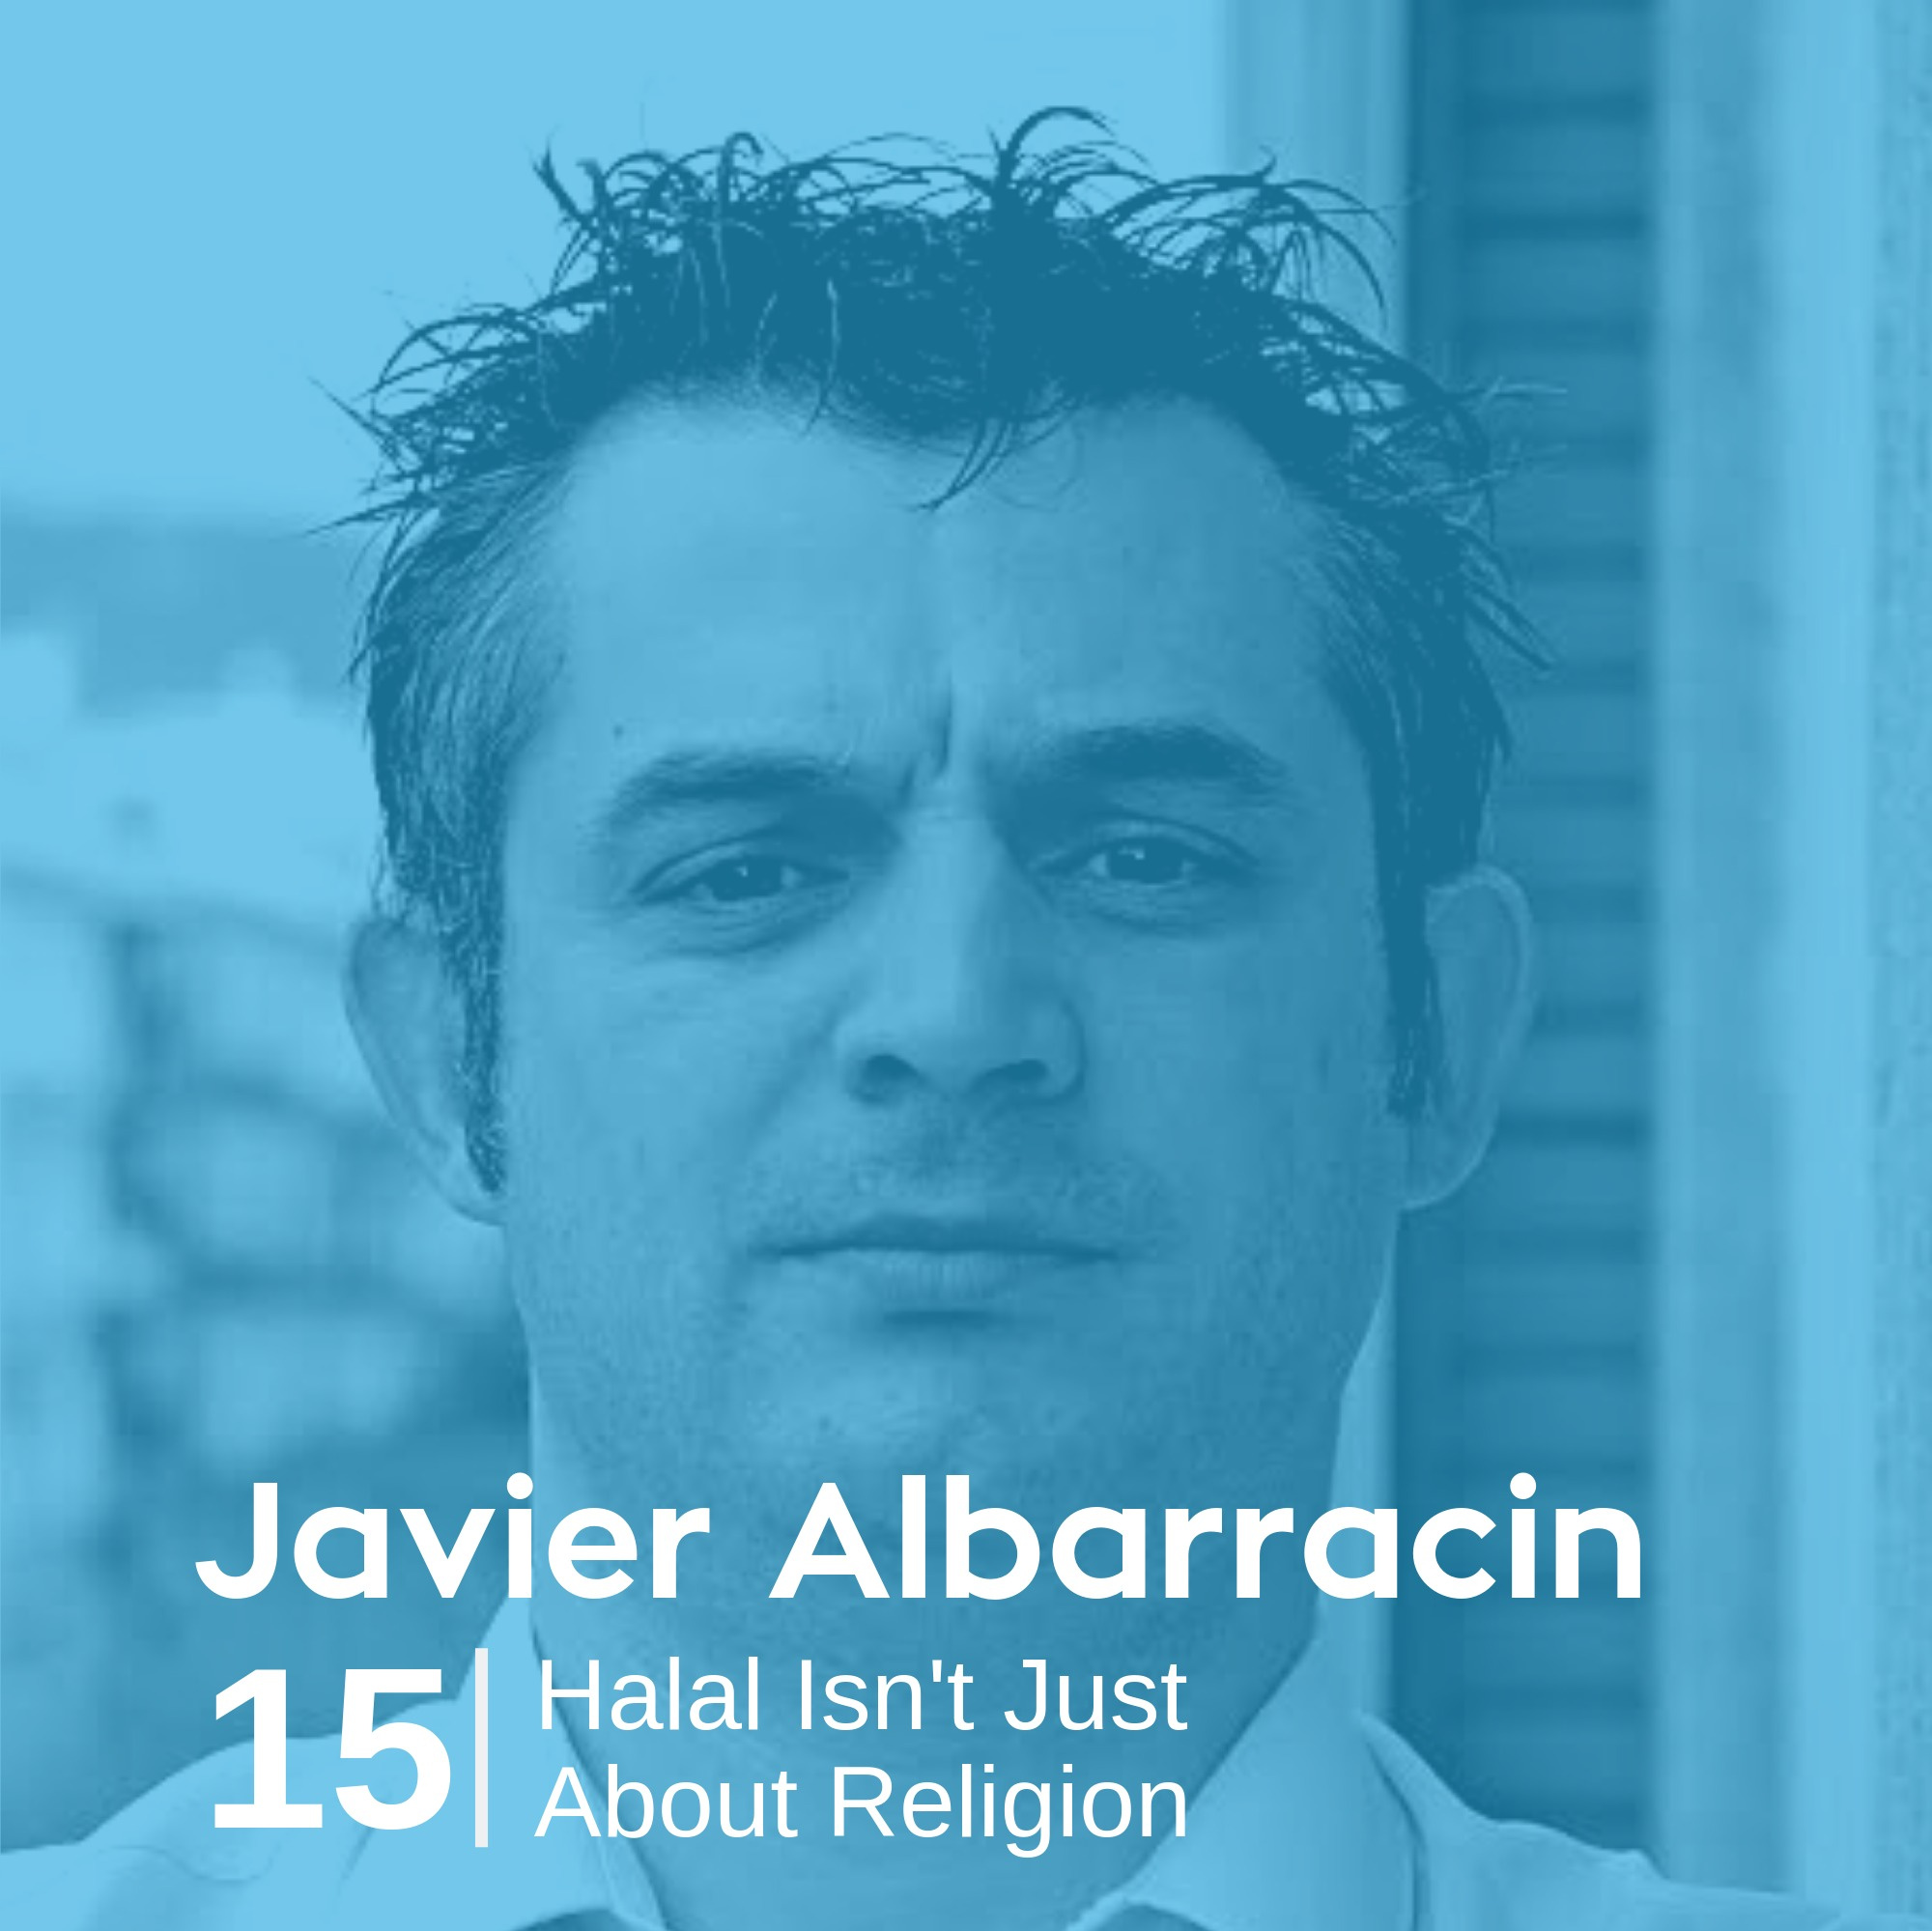 Ep 15. Javier Albarracin - Halal Isn't Just About Religion